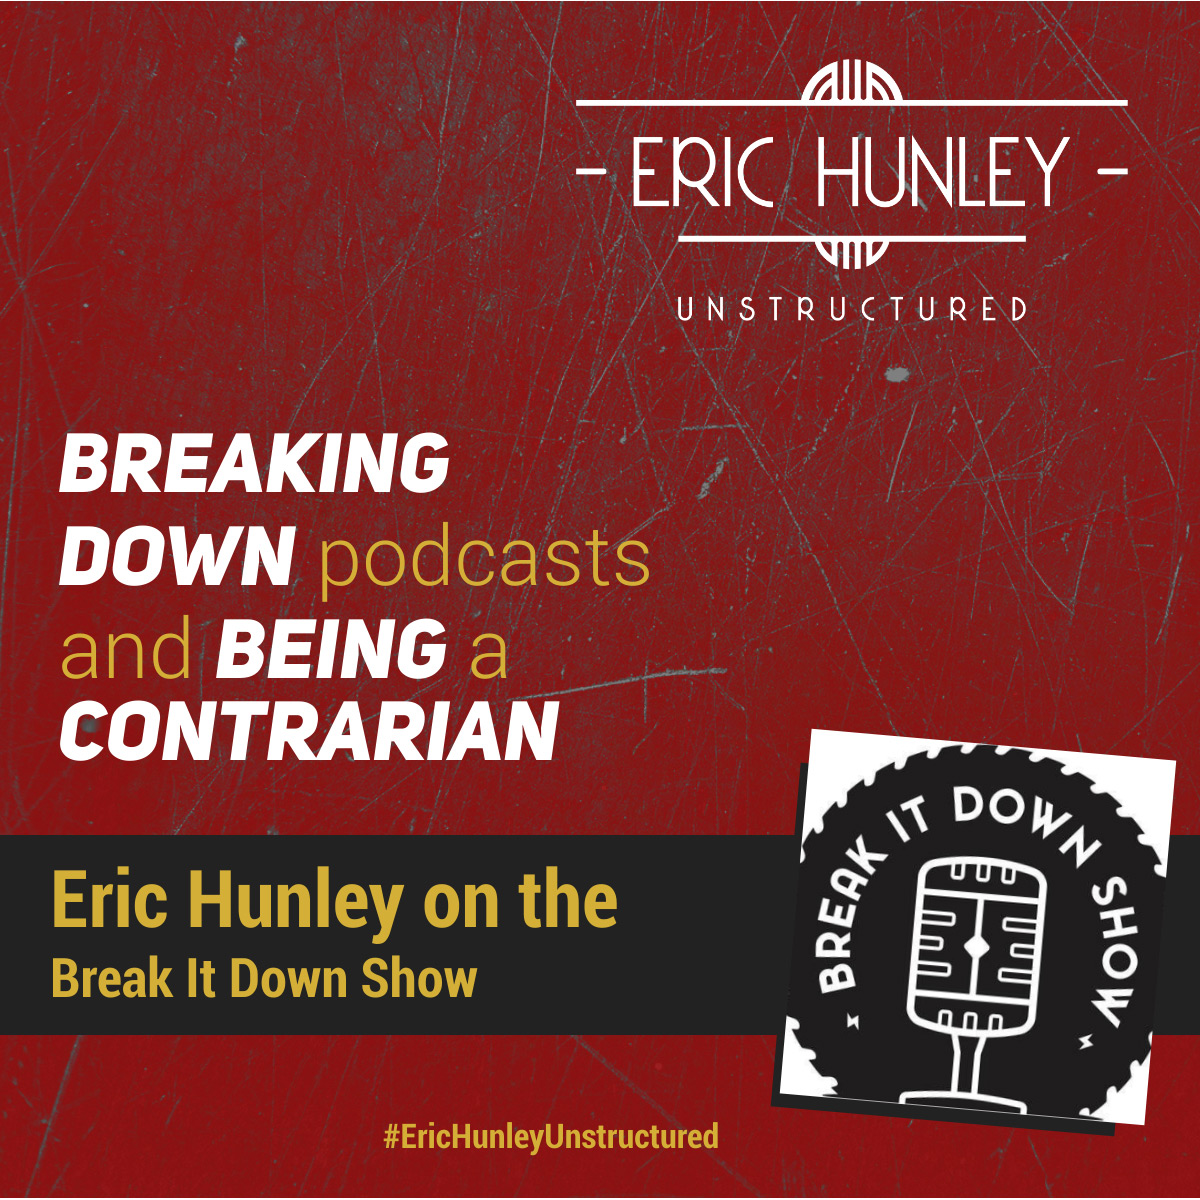 Eric Hunley Podcast Appearance Interviews - Break It Down Show Square Post